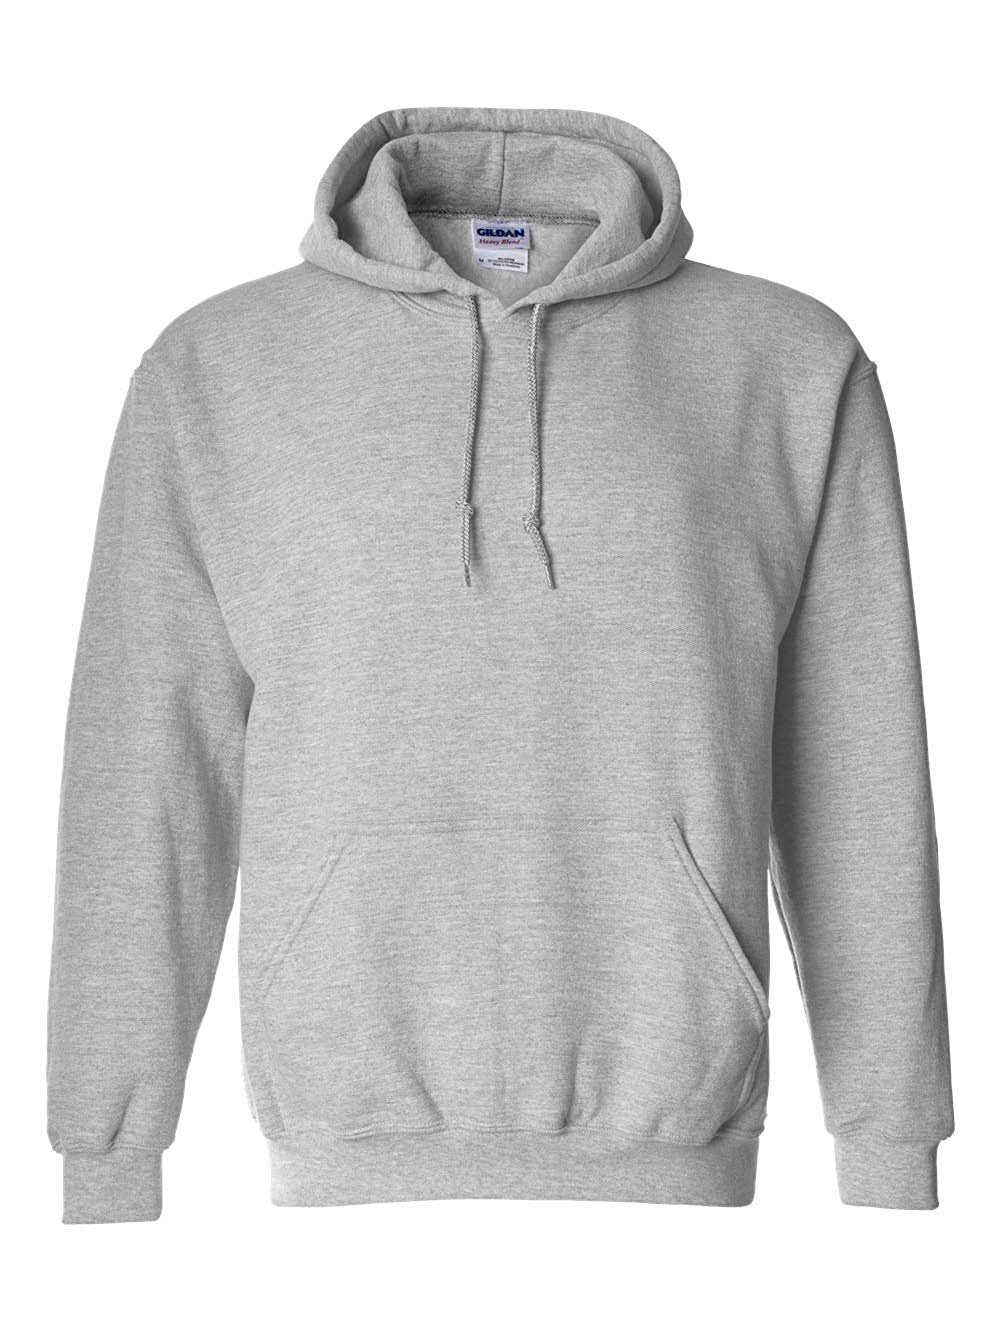 Gildan 18500 - Classic Fit Adult Hooded Sweatshirt Heavy Blend - First Qualit. at Amazon Men's Clothing store: